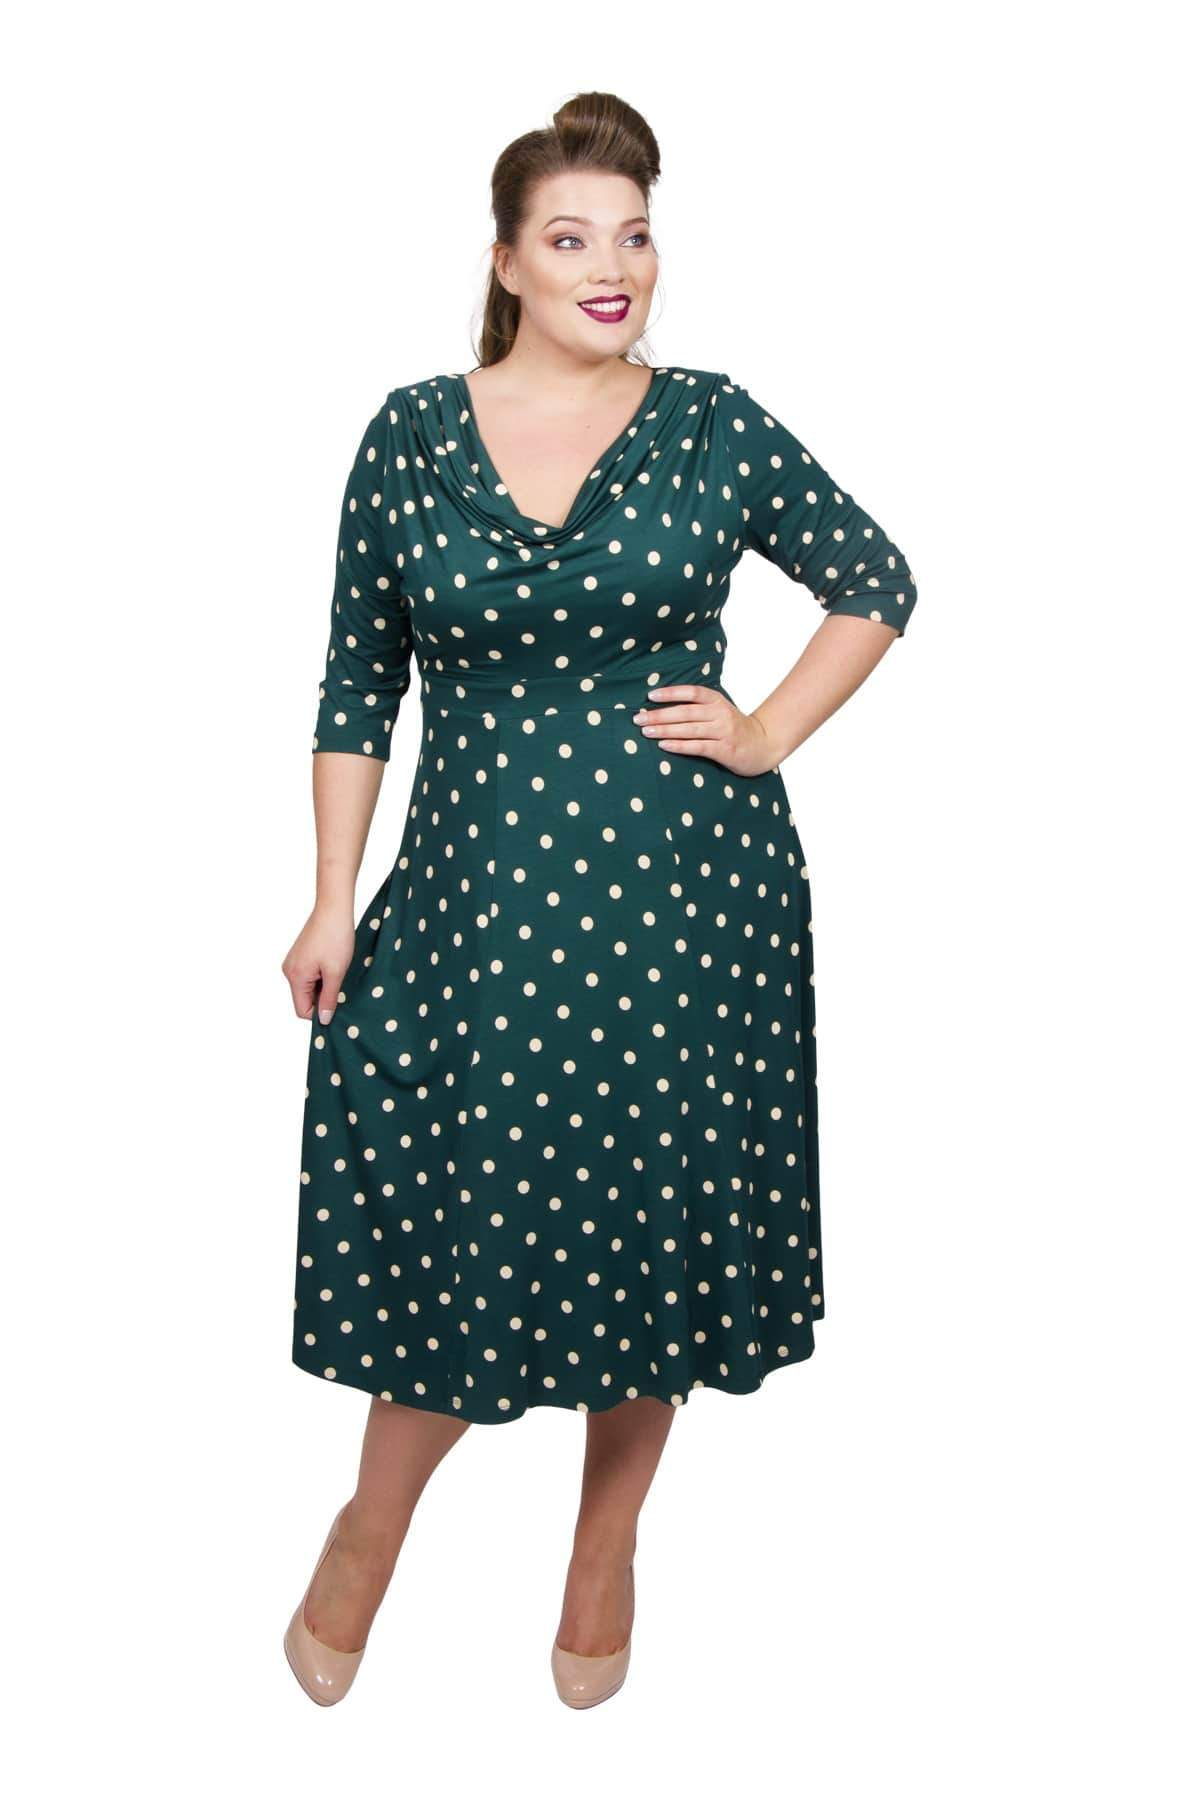 Swing Dance Clothing You Can Dance In Lollidot Cowl Neck 40s Dress - GreenWhite  12 £60.00 AT vintagedancer.com